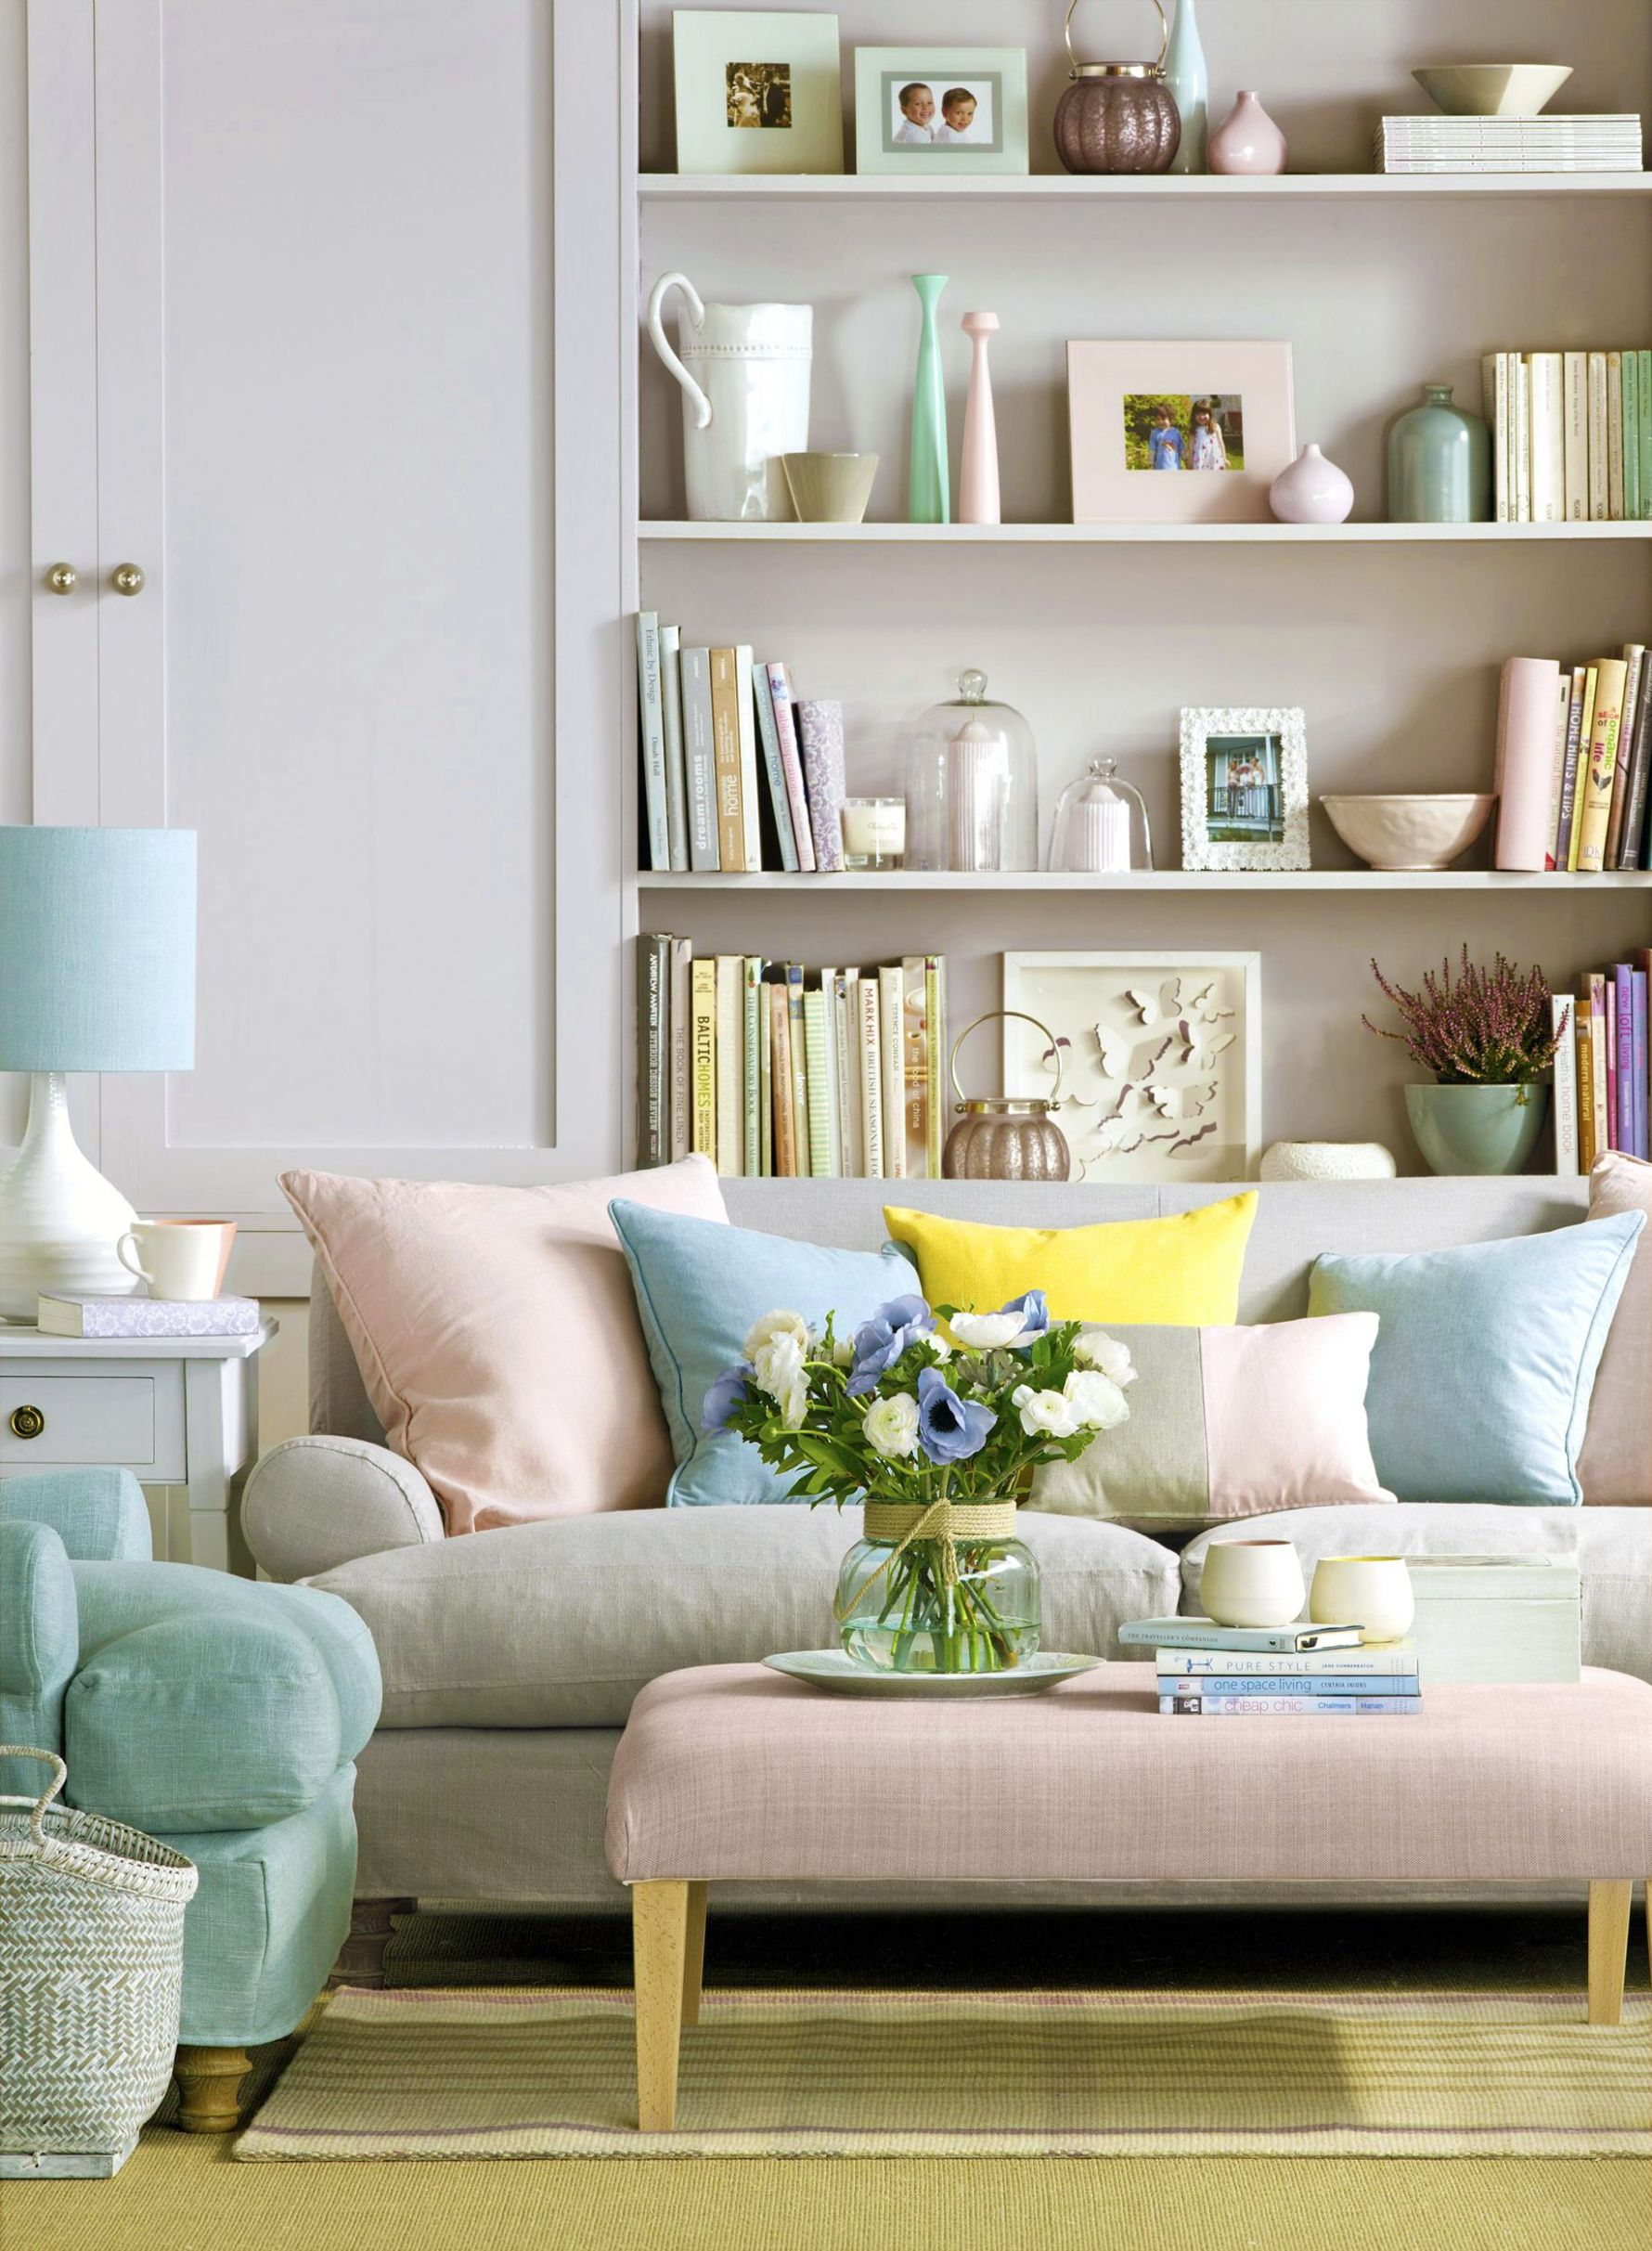 9 Spring Decor Ideas to Freshen Up Your Home - Best Spring ...